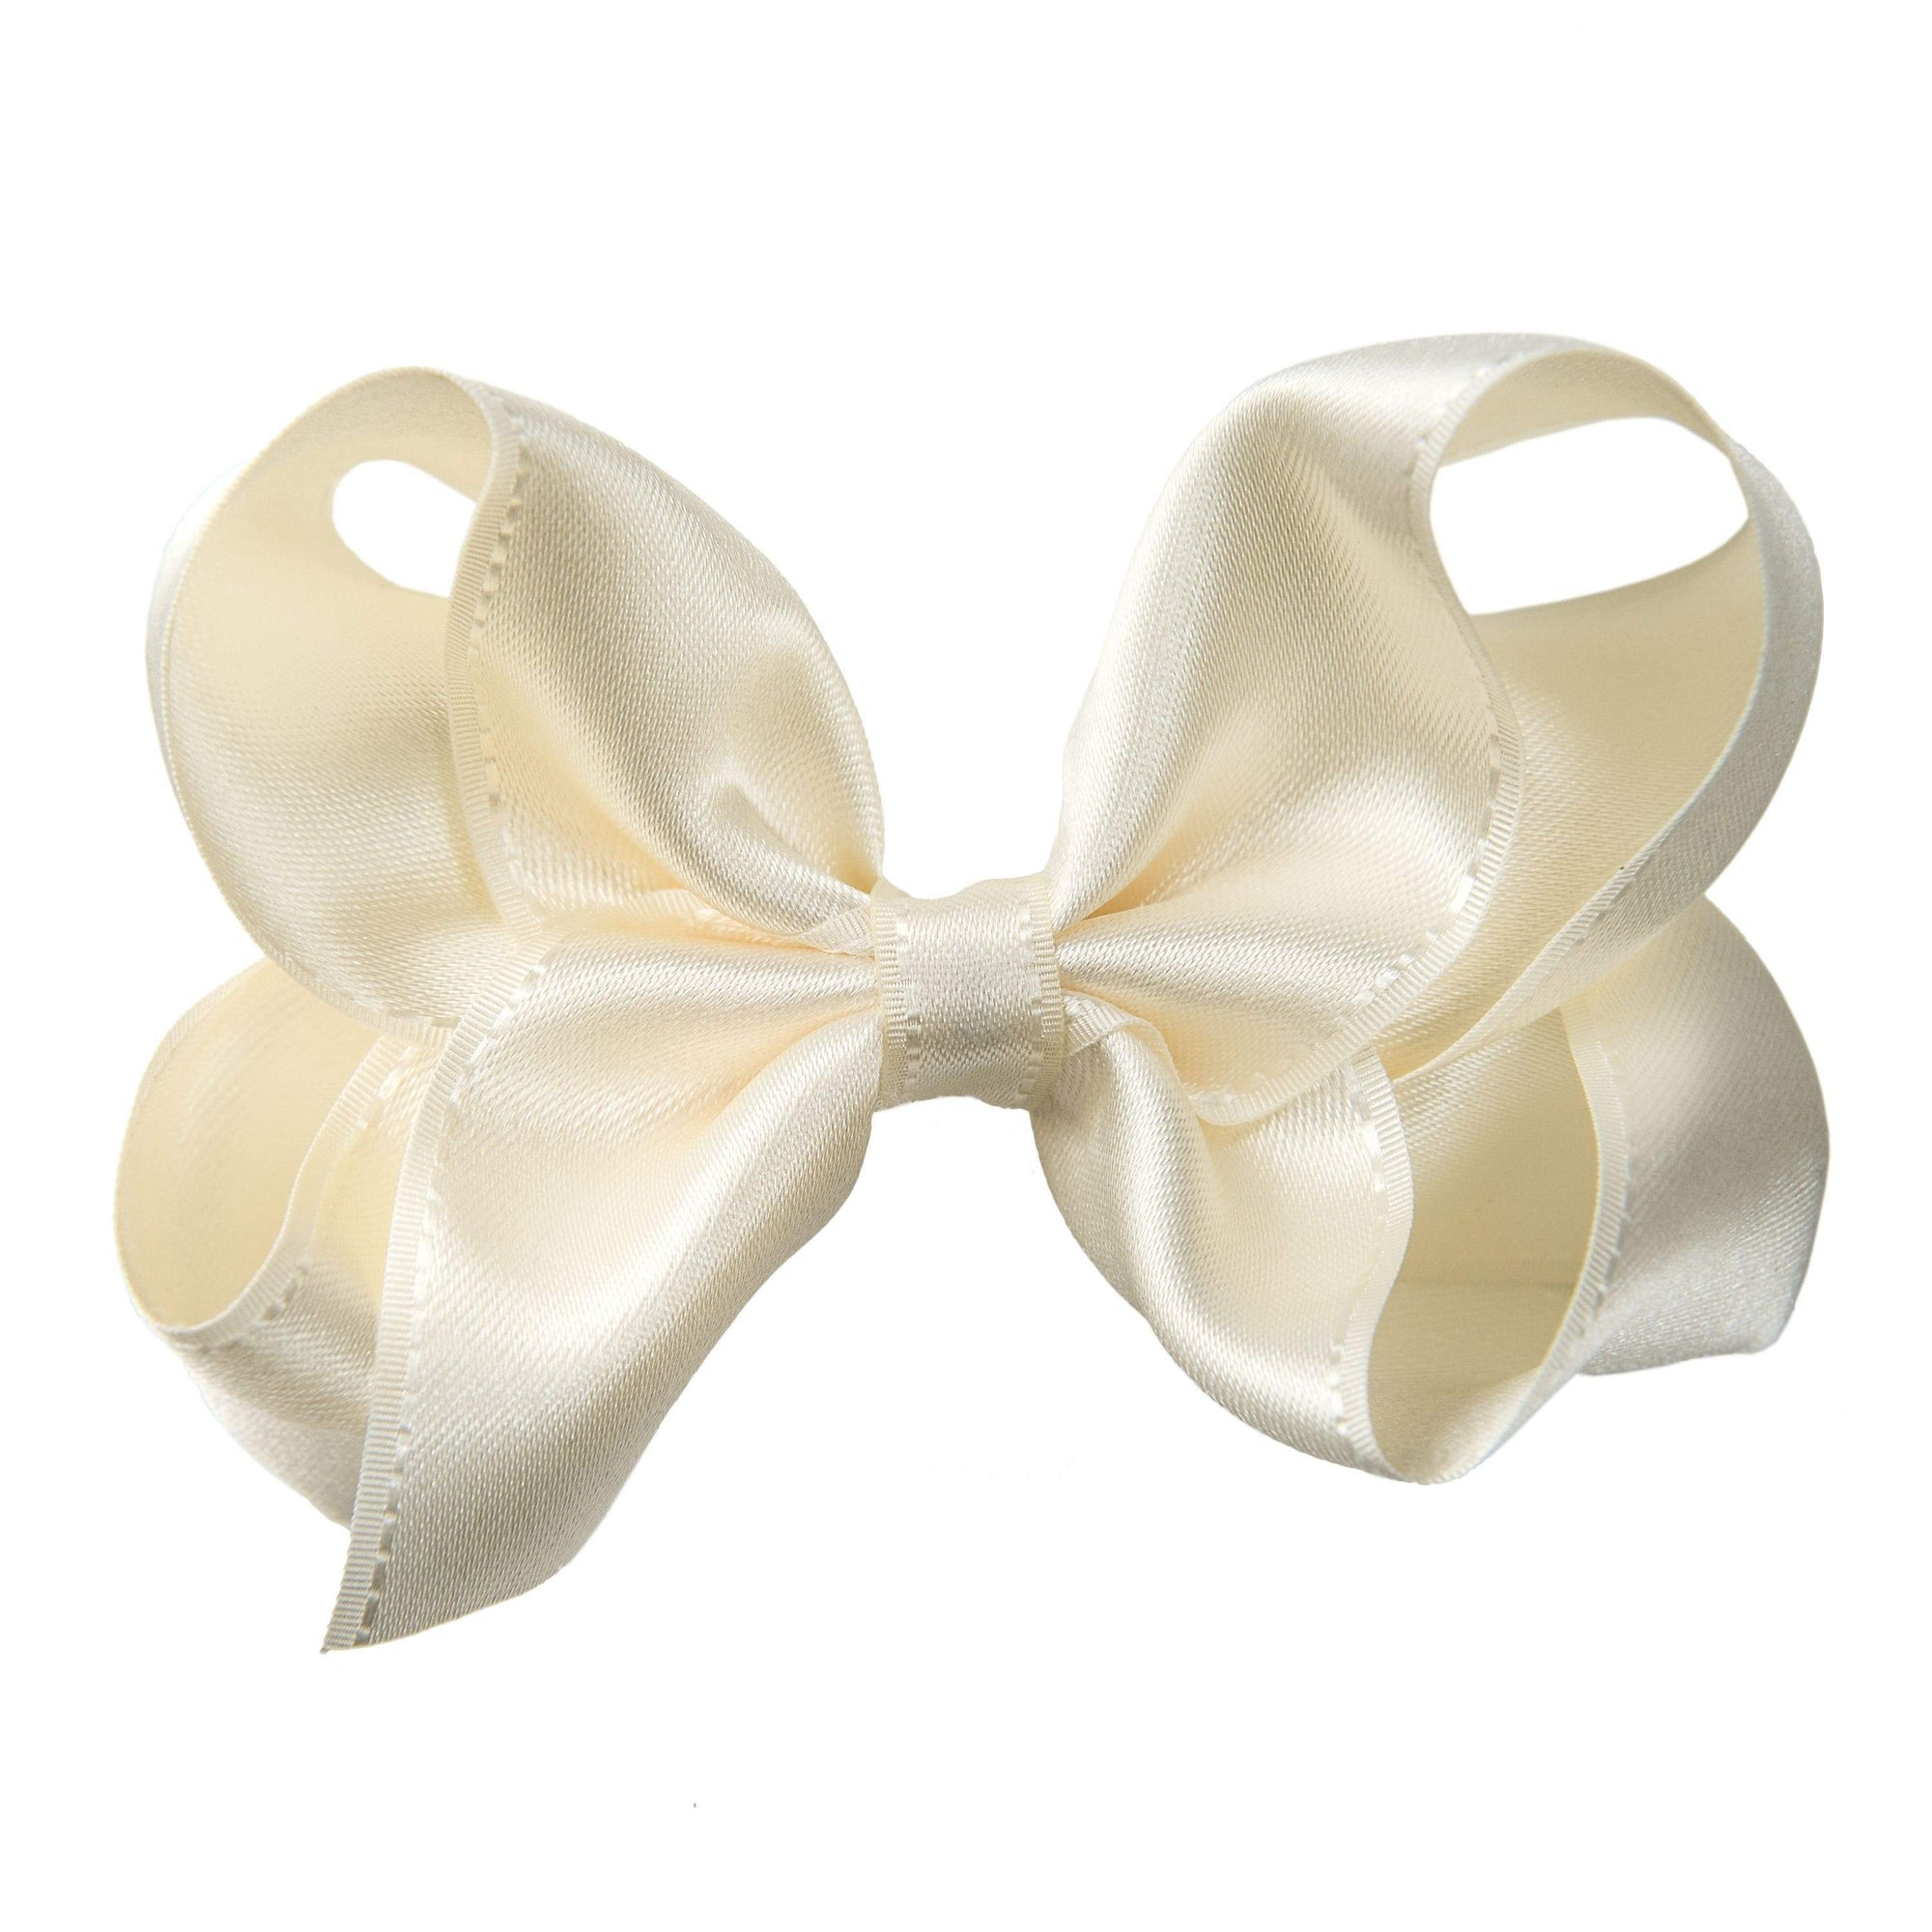 Pixies Bows Hair Clips Pixies Bows Medium Satin Stitch - Ivory